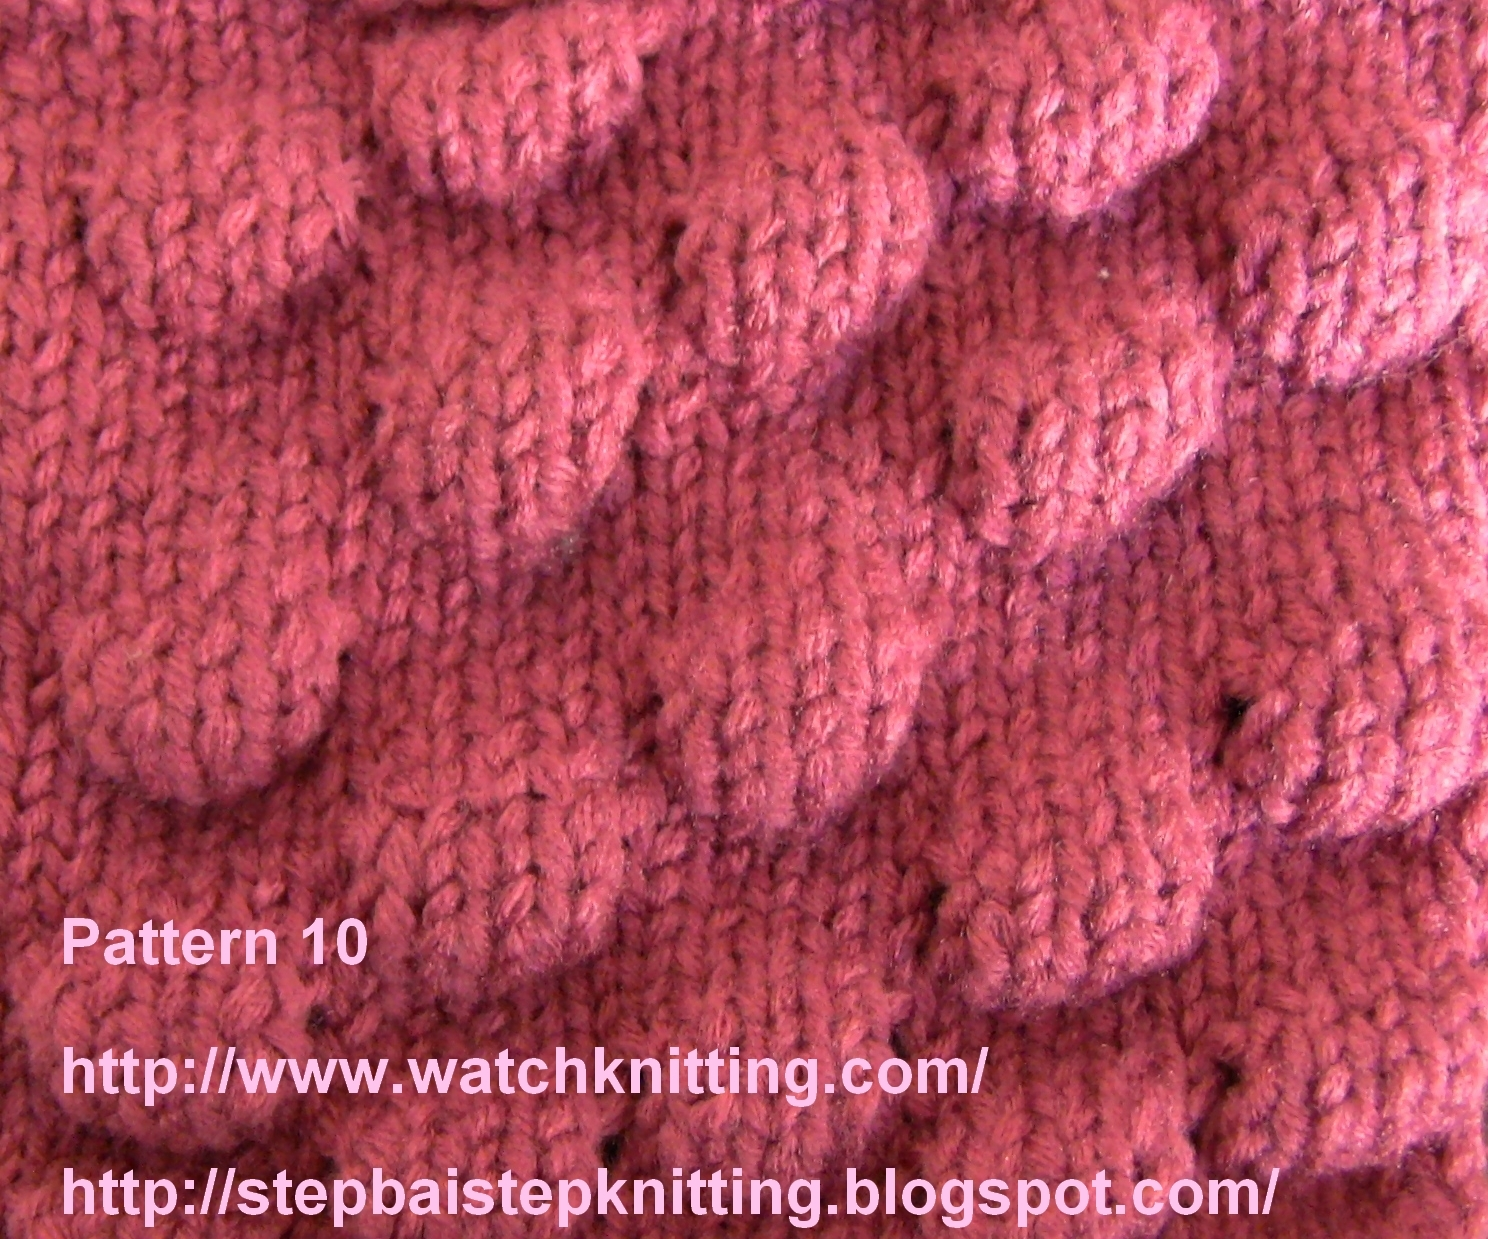 Patterns For Knitting : Pattern 12 (Tilt Stripes Stitch) - Basic Knitting Stitche s